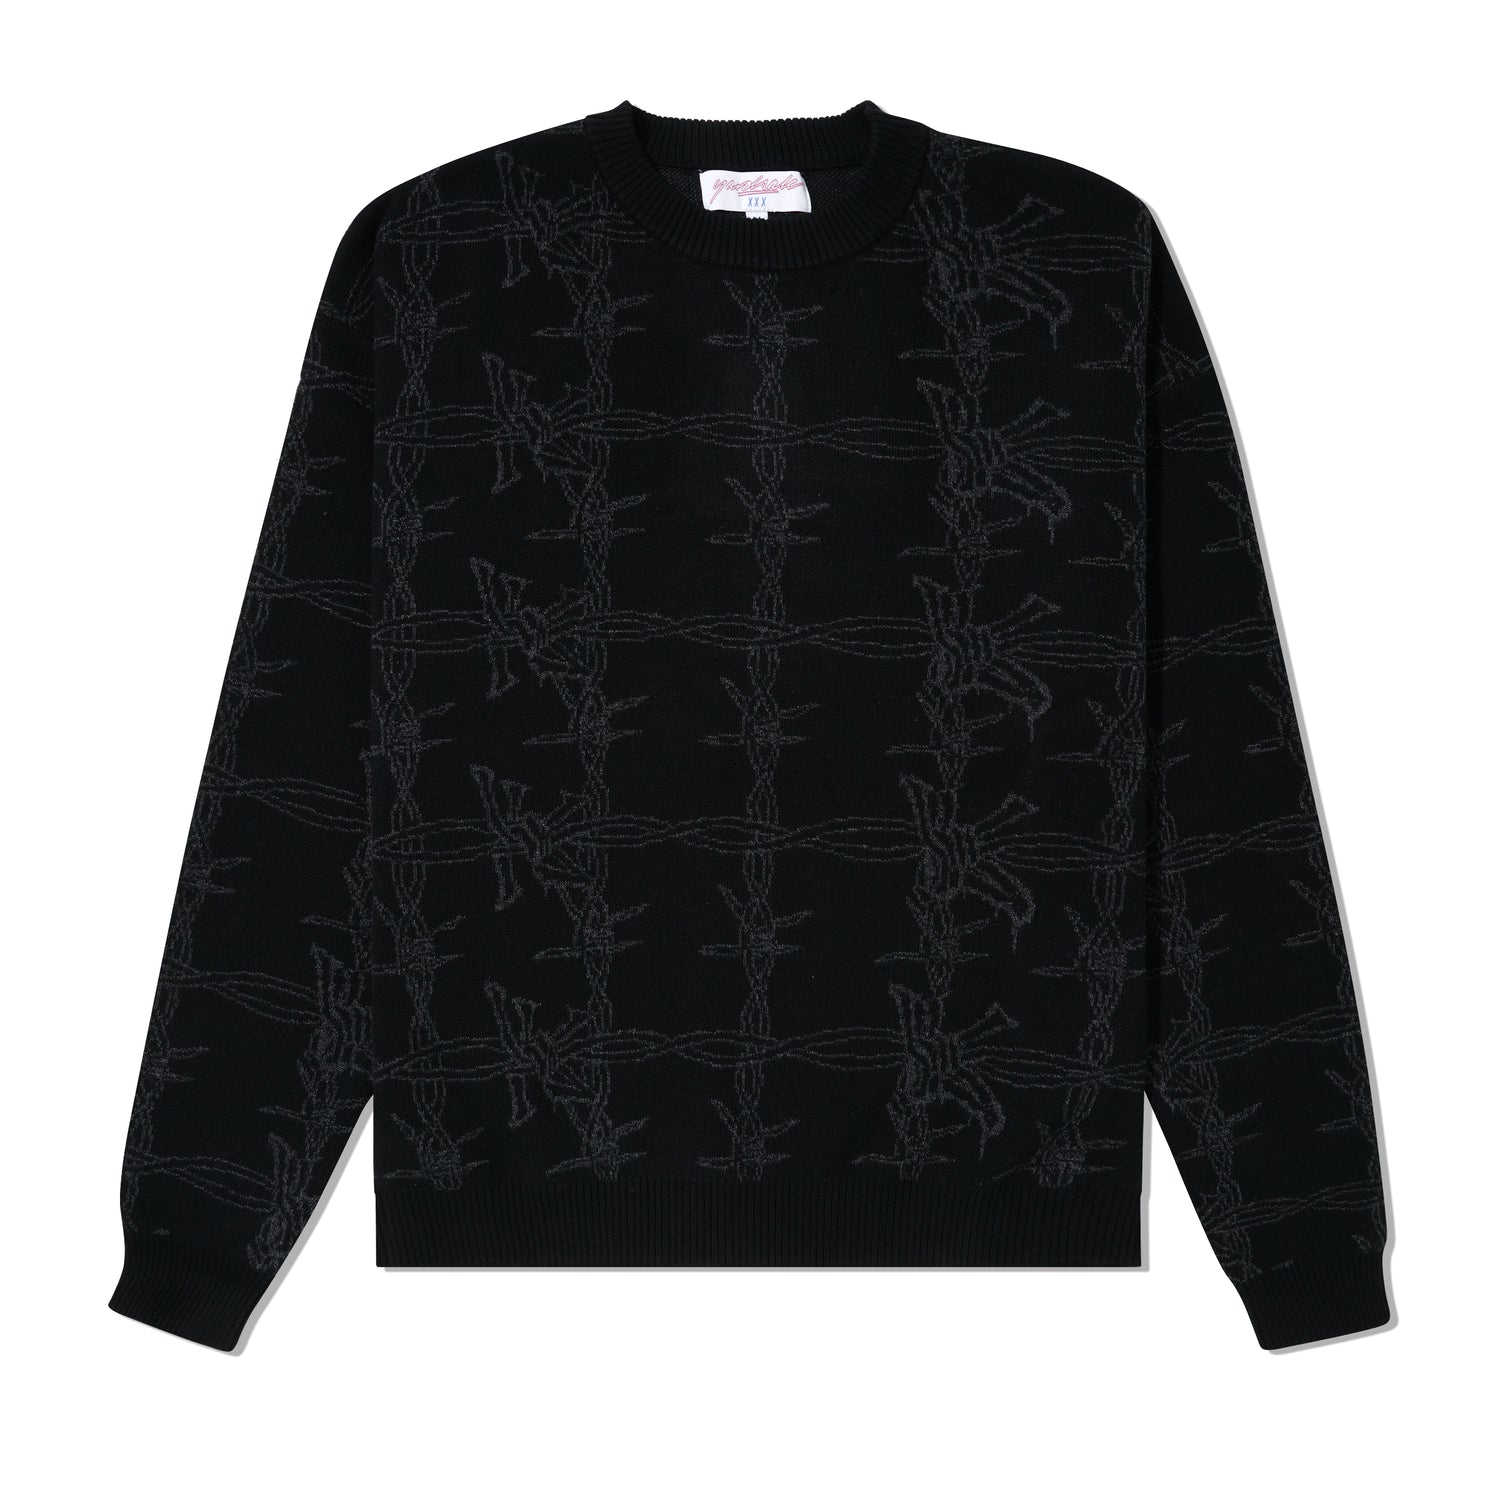 Barbera Knit Crewneck, Black / Black